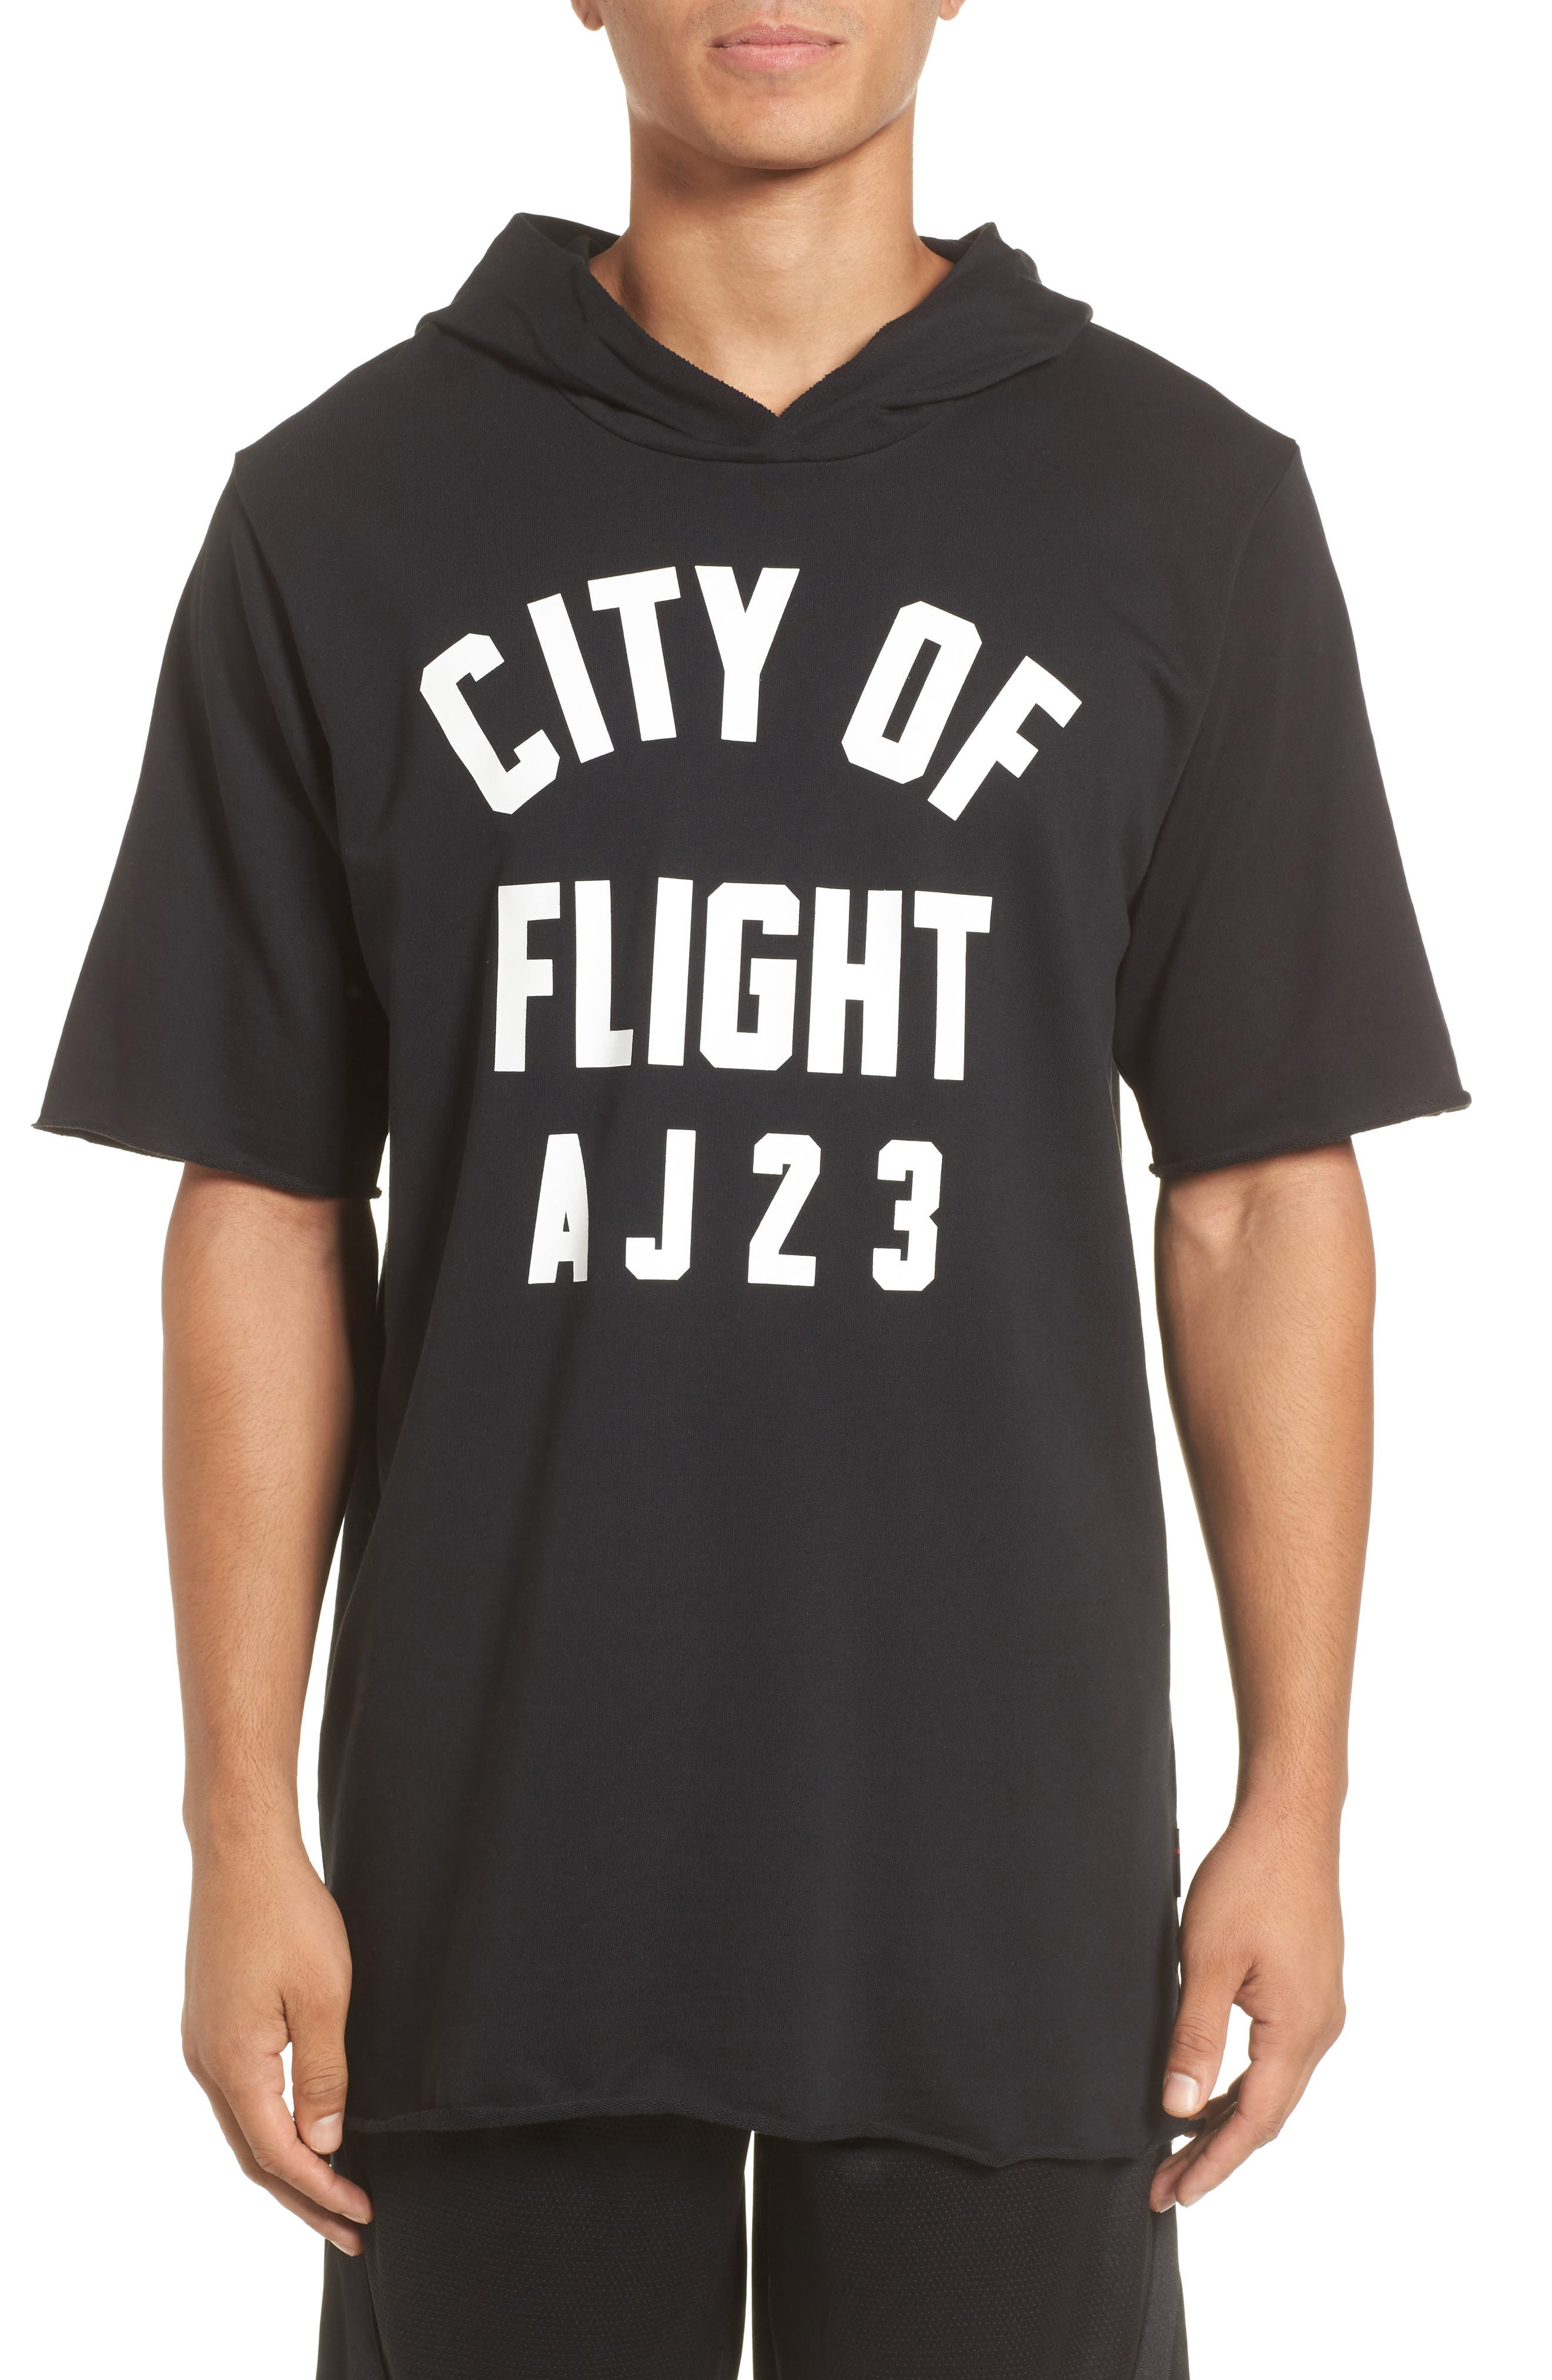 Sportswear City of Flight Hooded T-Shirt,                             Main thumbnail 1, color,                             Black/ White